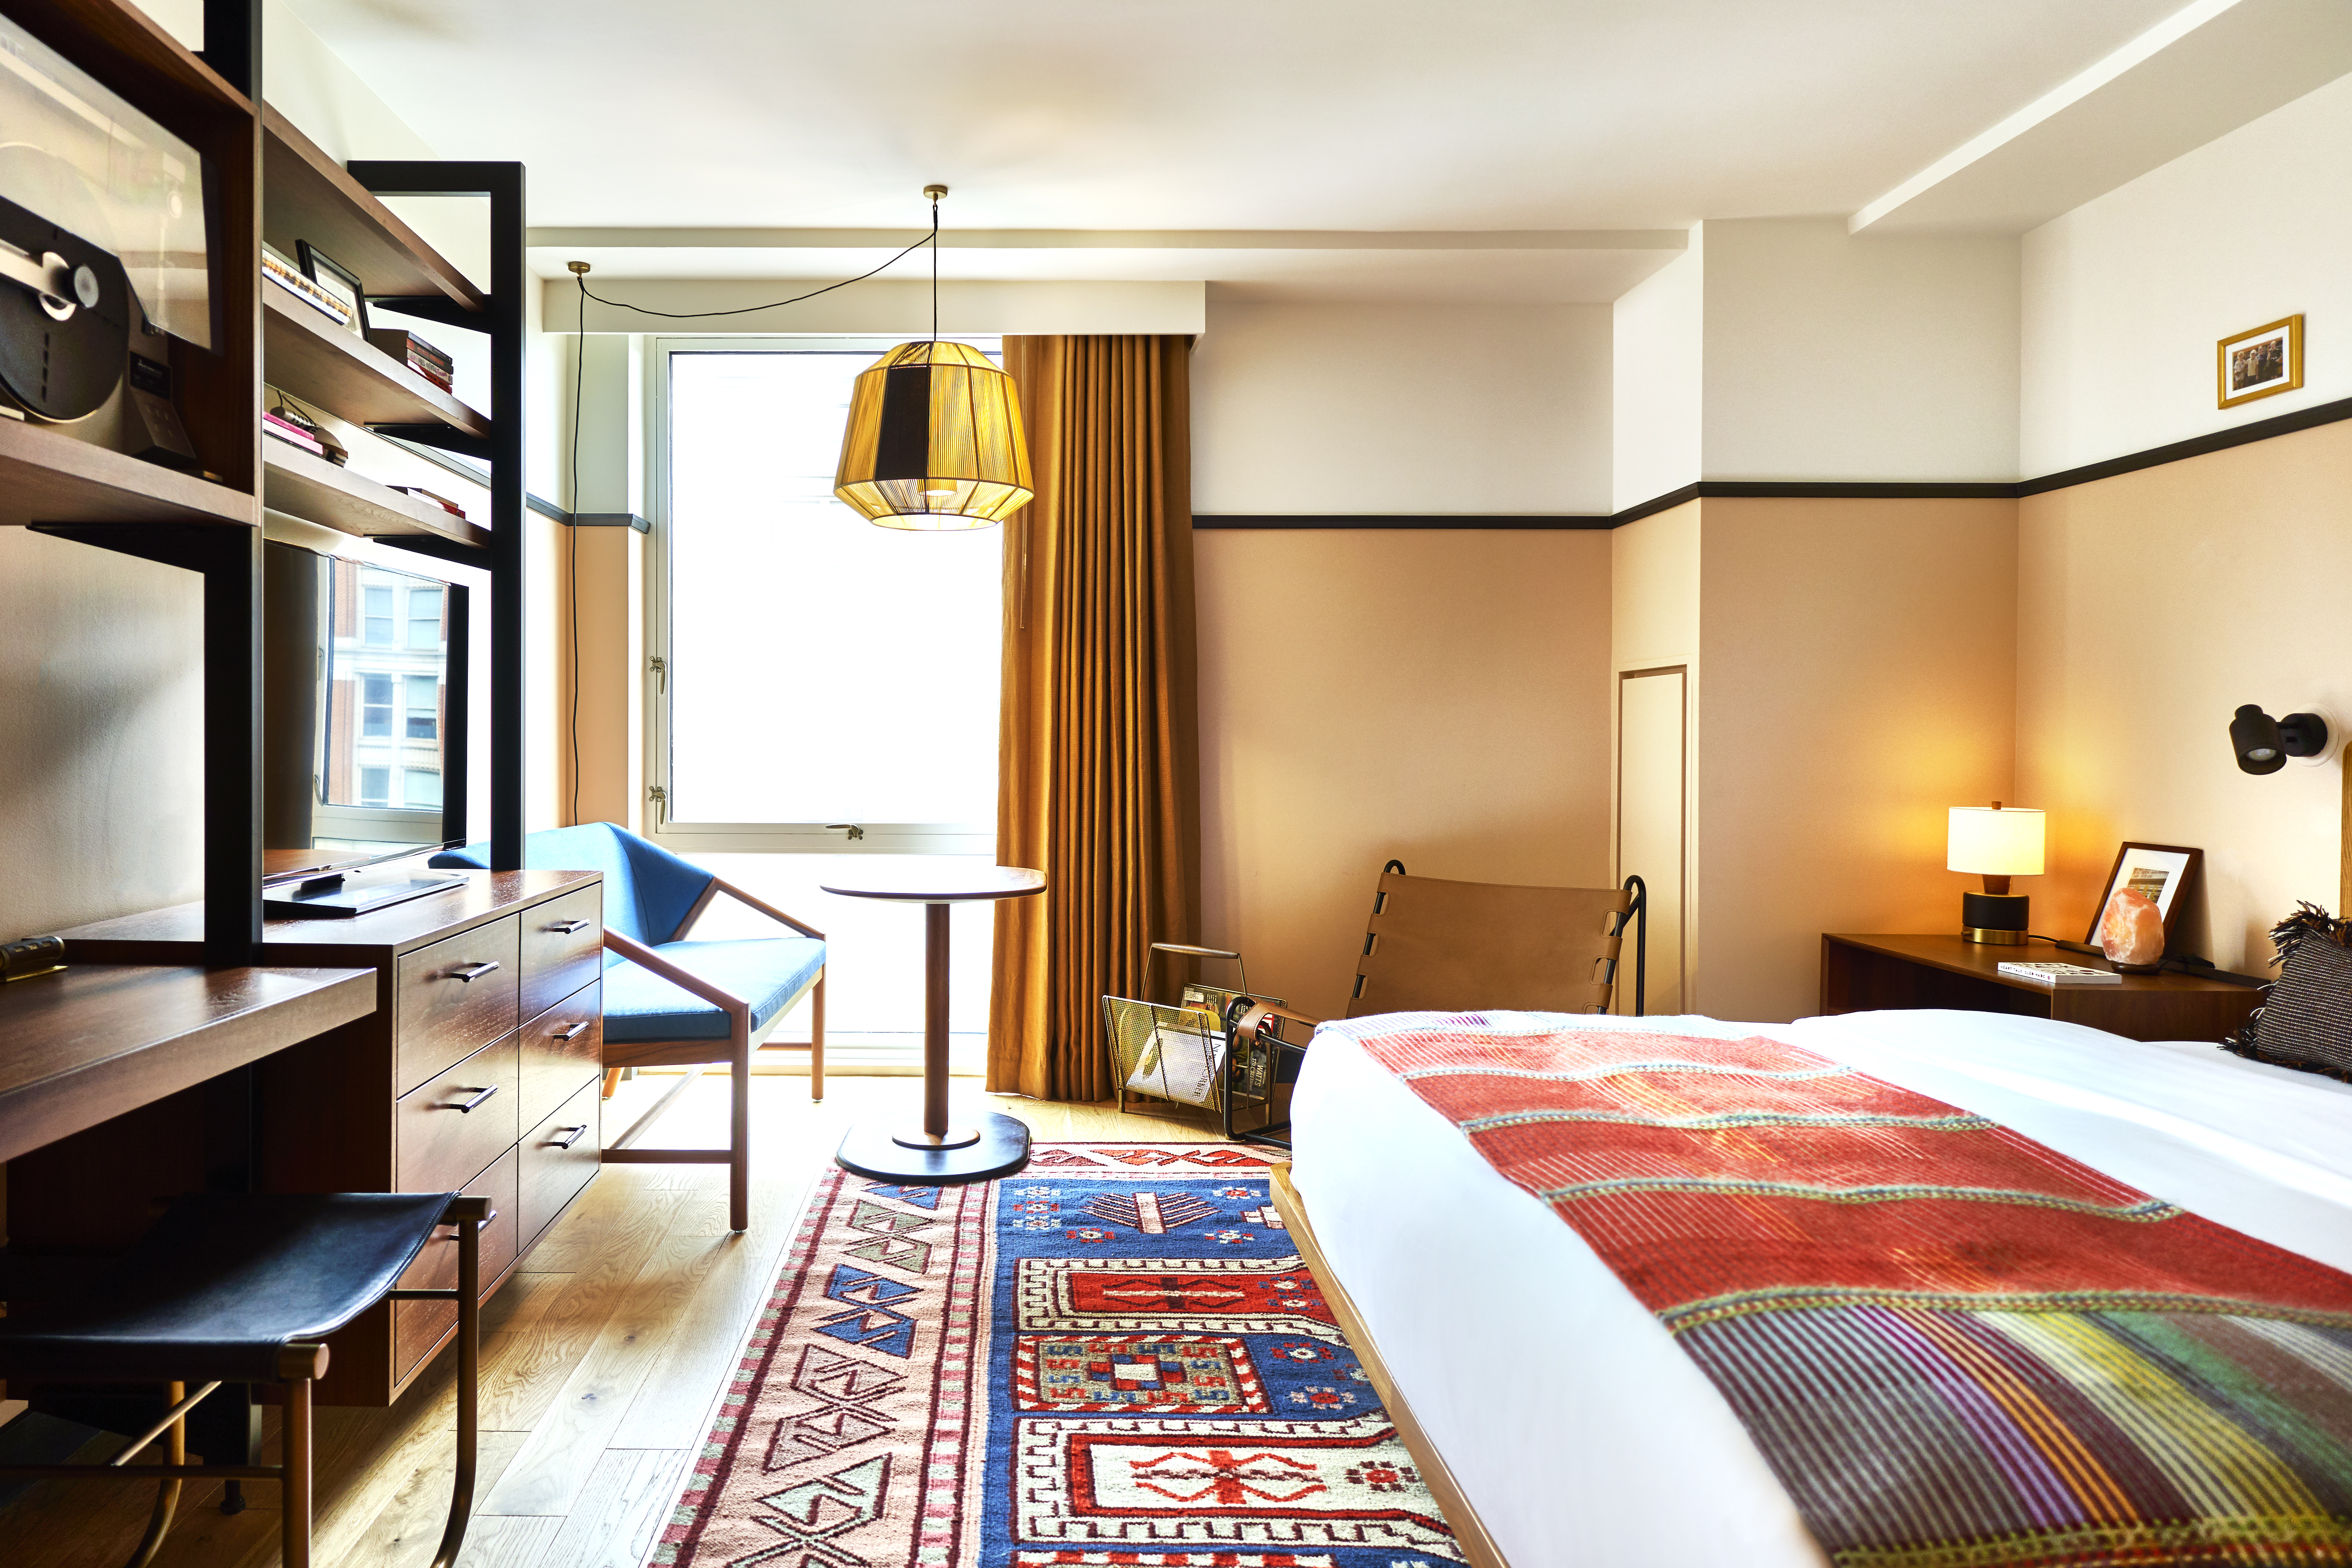 Eaton DC's guest rooms feature a boho-chic design that complements its eco-friendly sensibilities. (Image: Adrian Gaut)